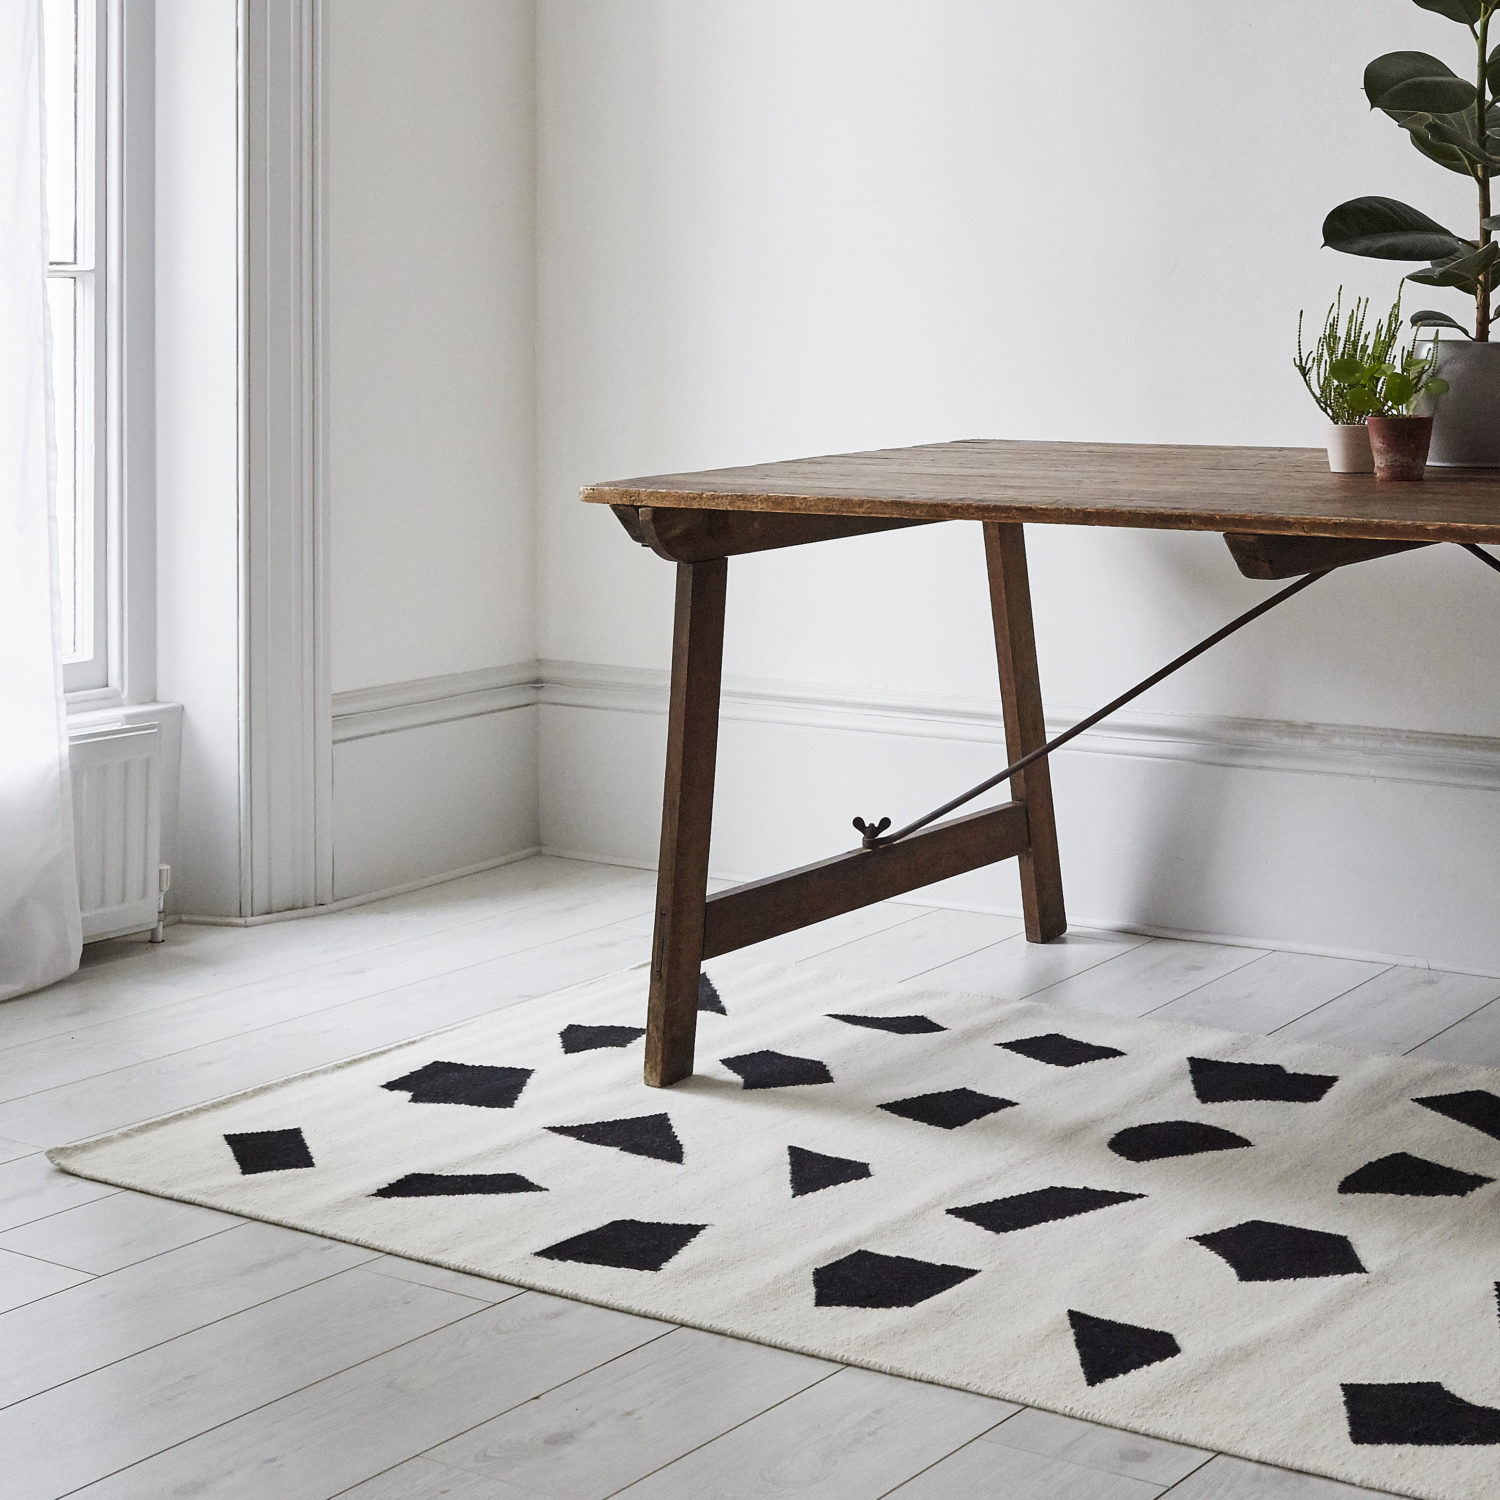 Unusual shapes and high-contrast define this modern kilim